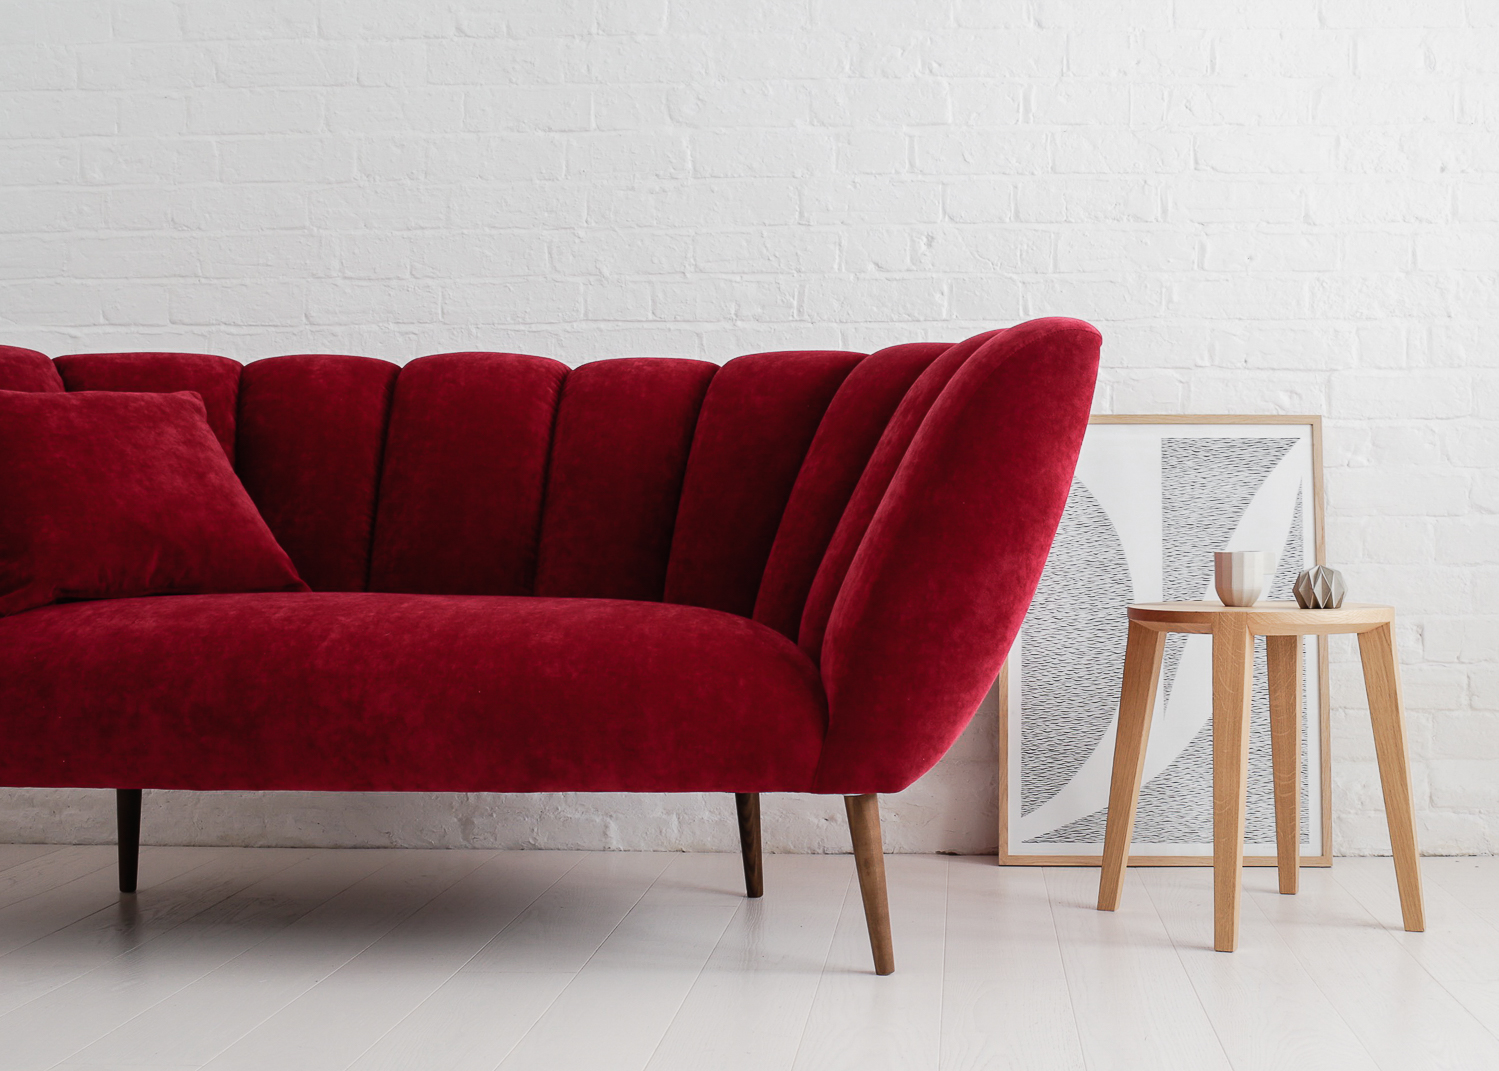 A my sofa  & L ara small side table  by Carsten Astheimer